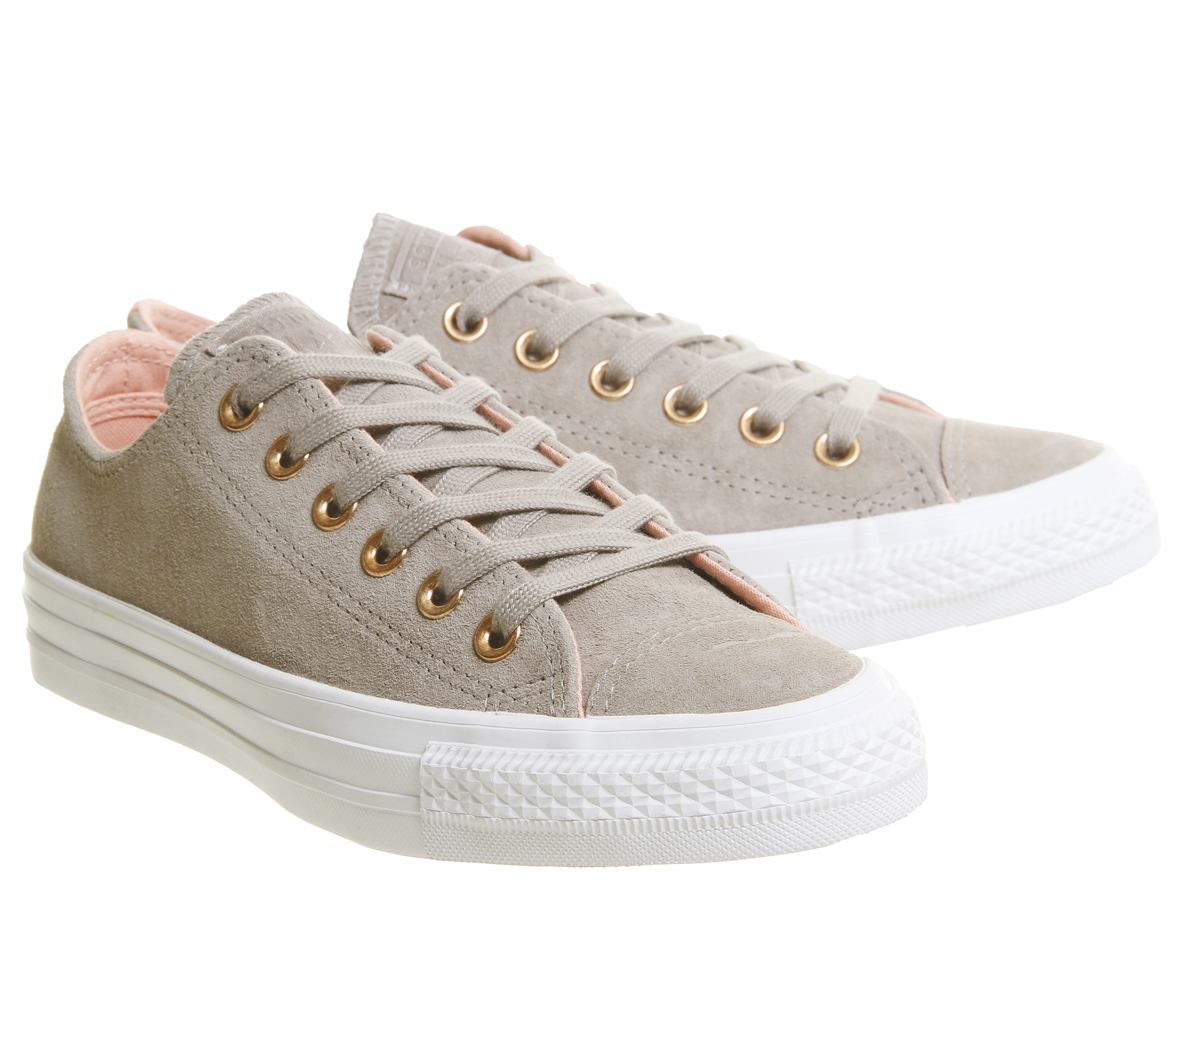 dff2869a8eaa Womens Converse Allstar Low Leather Malted Pale Coral White Trainers ...